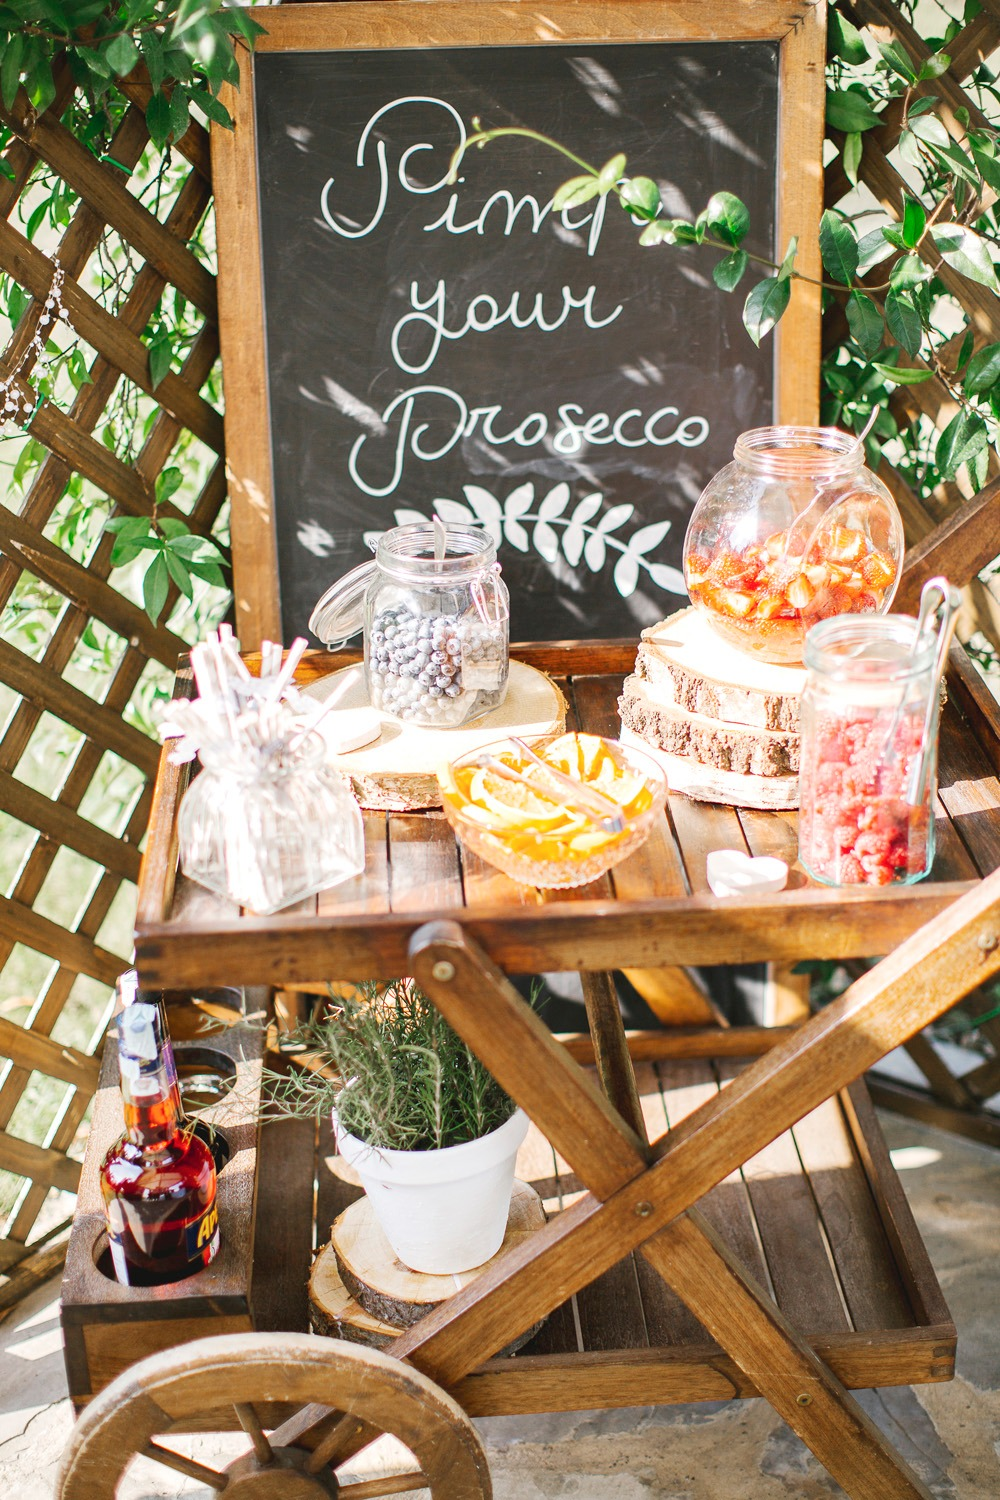 Pimp your Prosecco bar cart